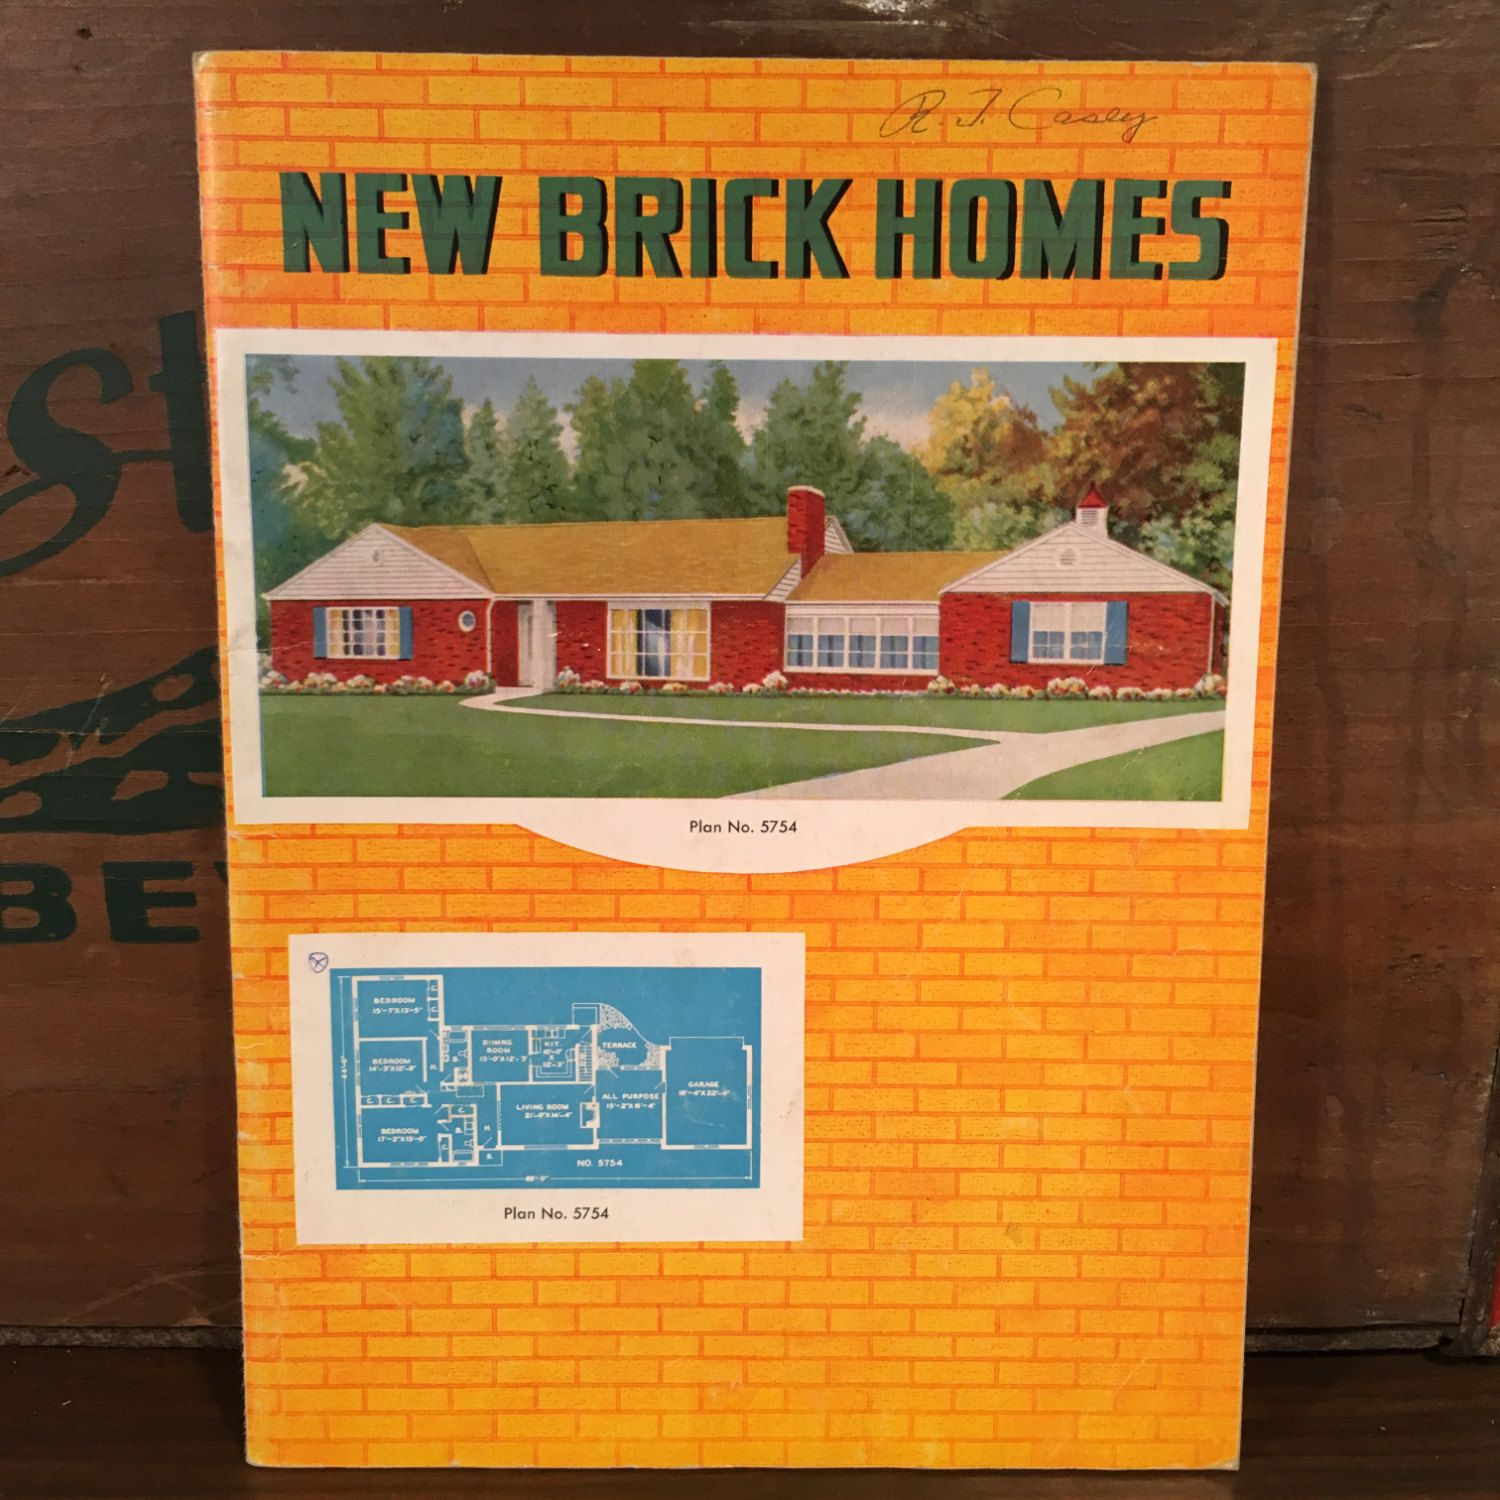 New brick homes 1950s garlinghouse building plan service vintage mid new brick homes 1950s garlinghouse building plan service vintage mid century house blueprint catalog topeka kansas malvernweather